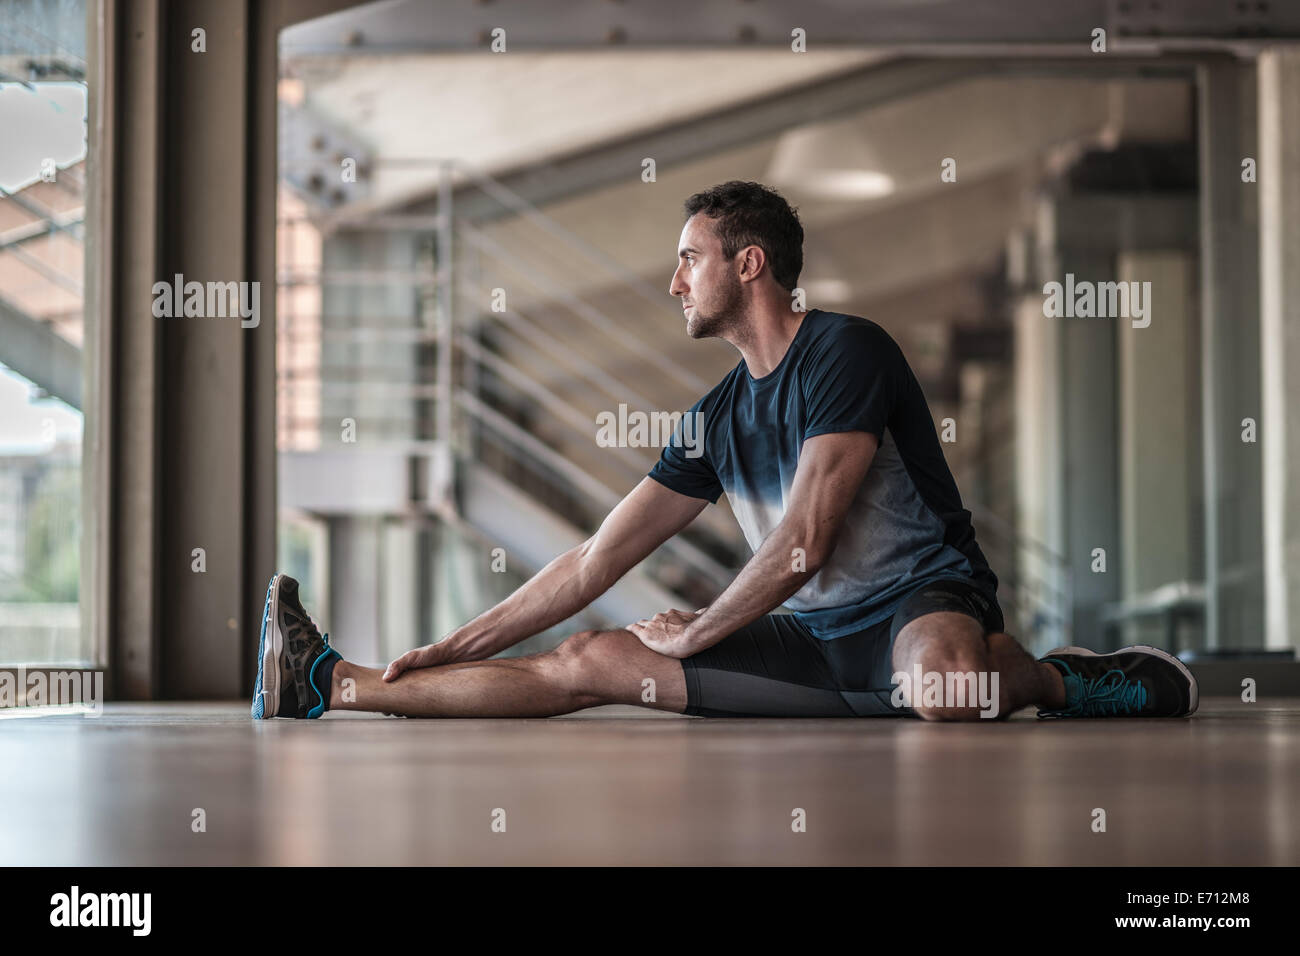 Mid adult man stretching - Stock Image